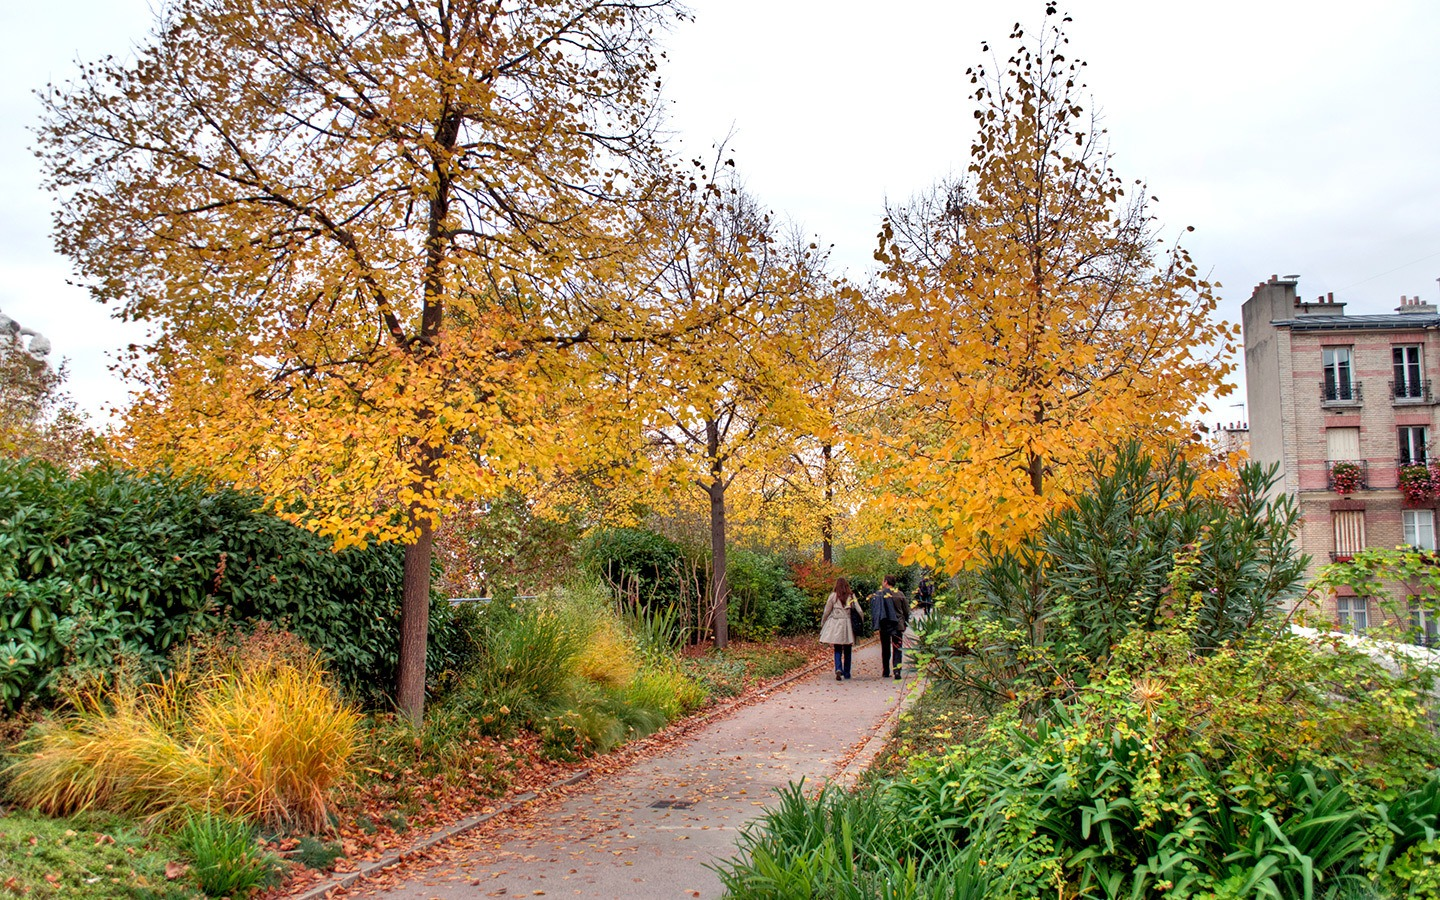 Autumn on the Promenade Plantee park in Paris